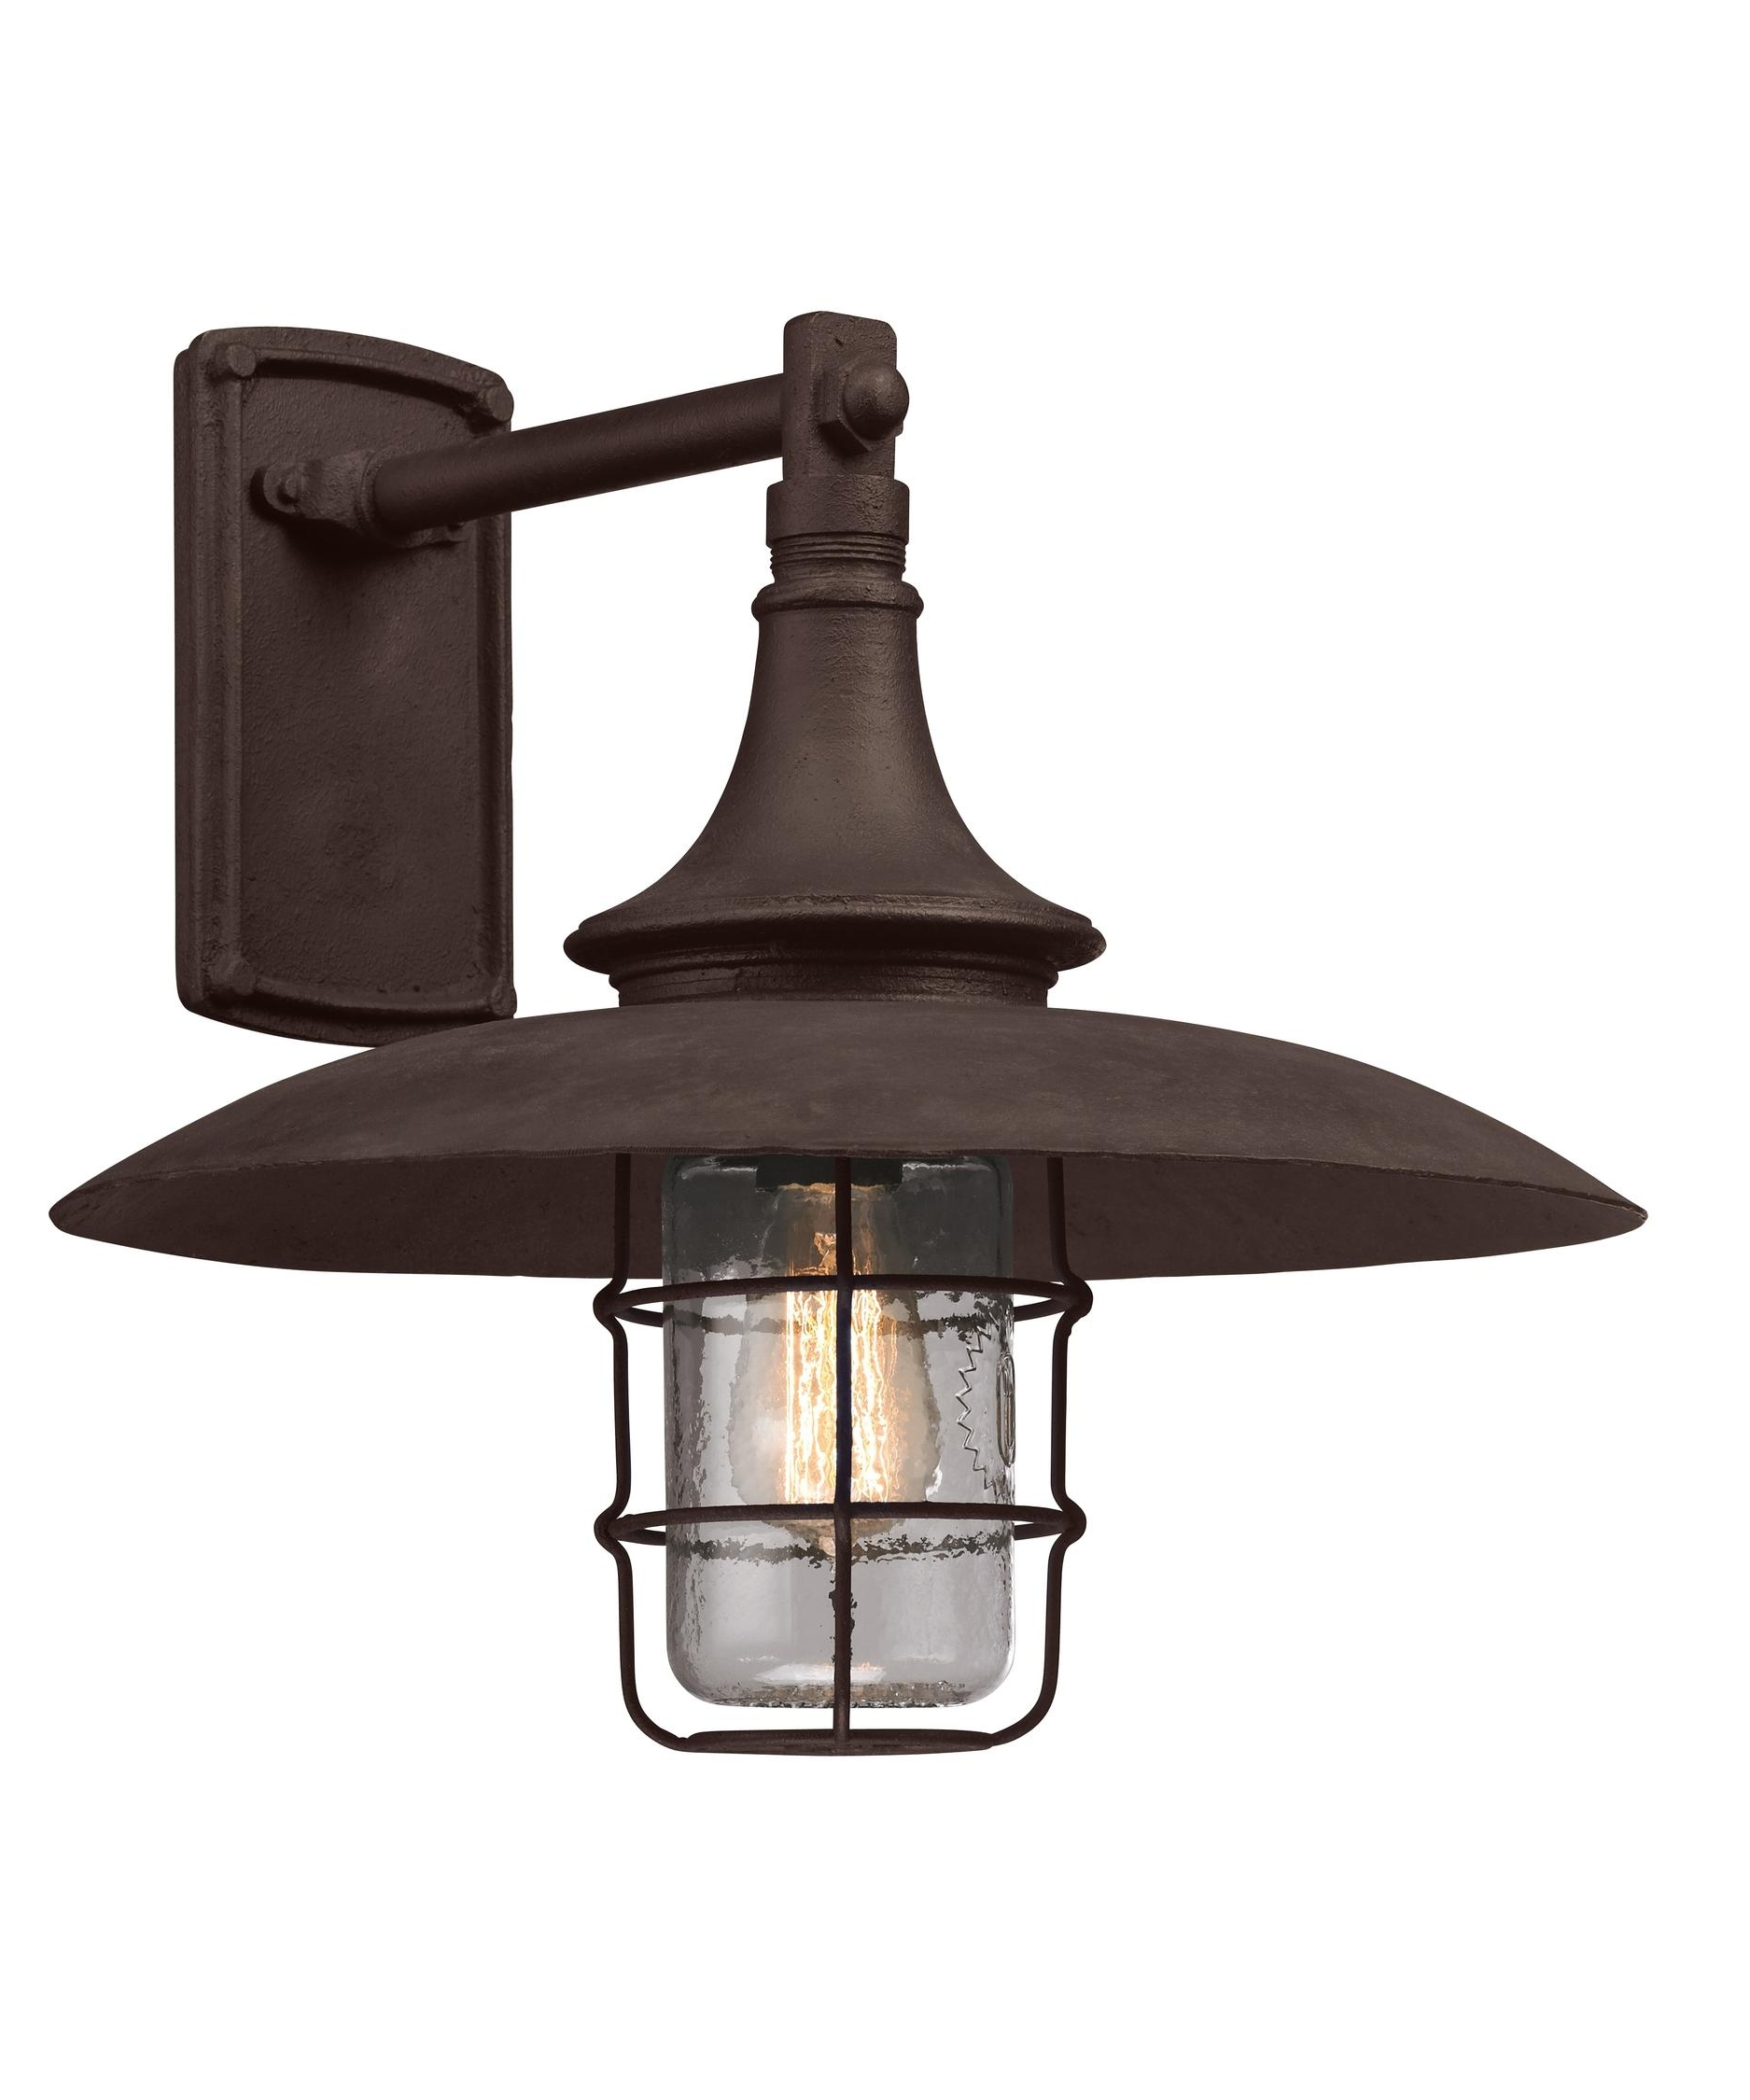 Troy Lighting B3222 Allegany 16 Inch Wide 1 Light Outdoor Wall Light Inside Most Popular Antique Outdoor Wall Lights (View 19 of 20)